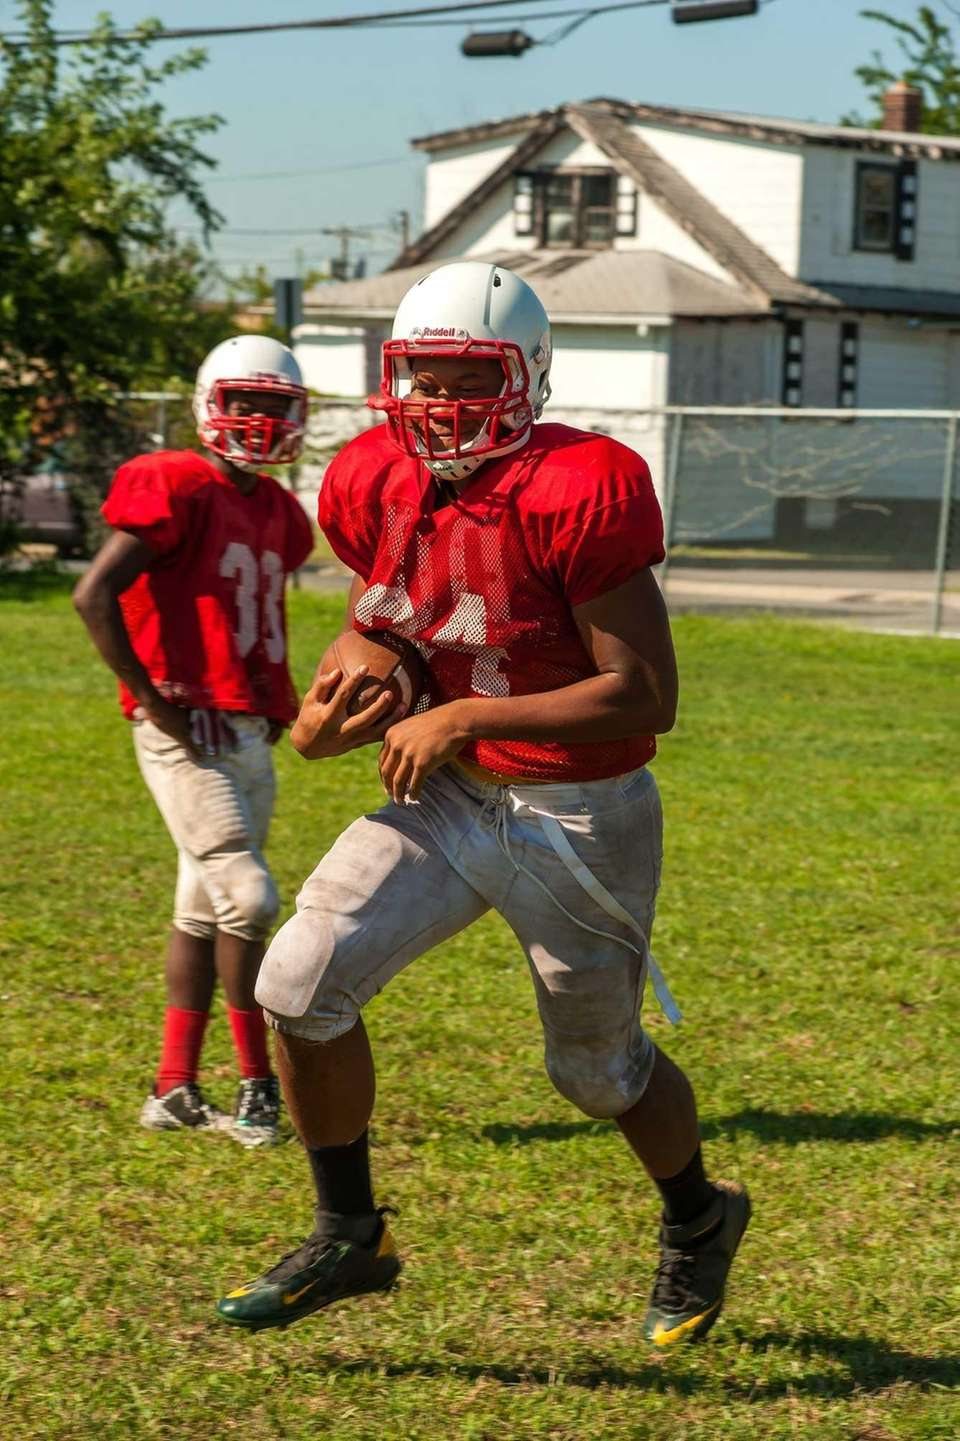 Freeport's Tyree Powell practices for the 2015 football